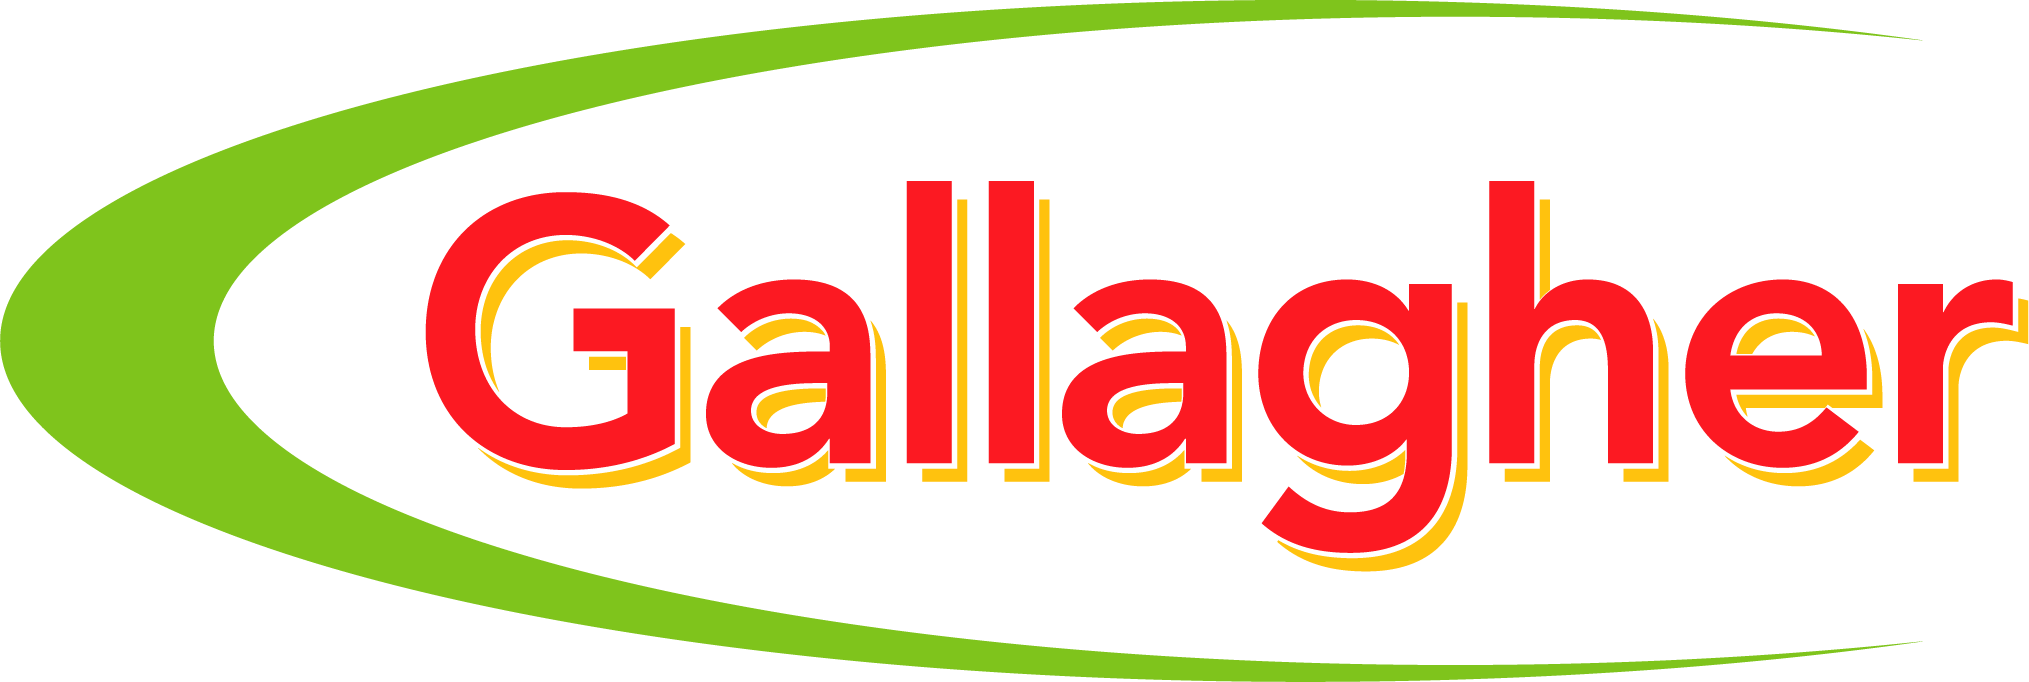 Gallagher Group Logo